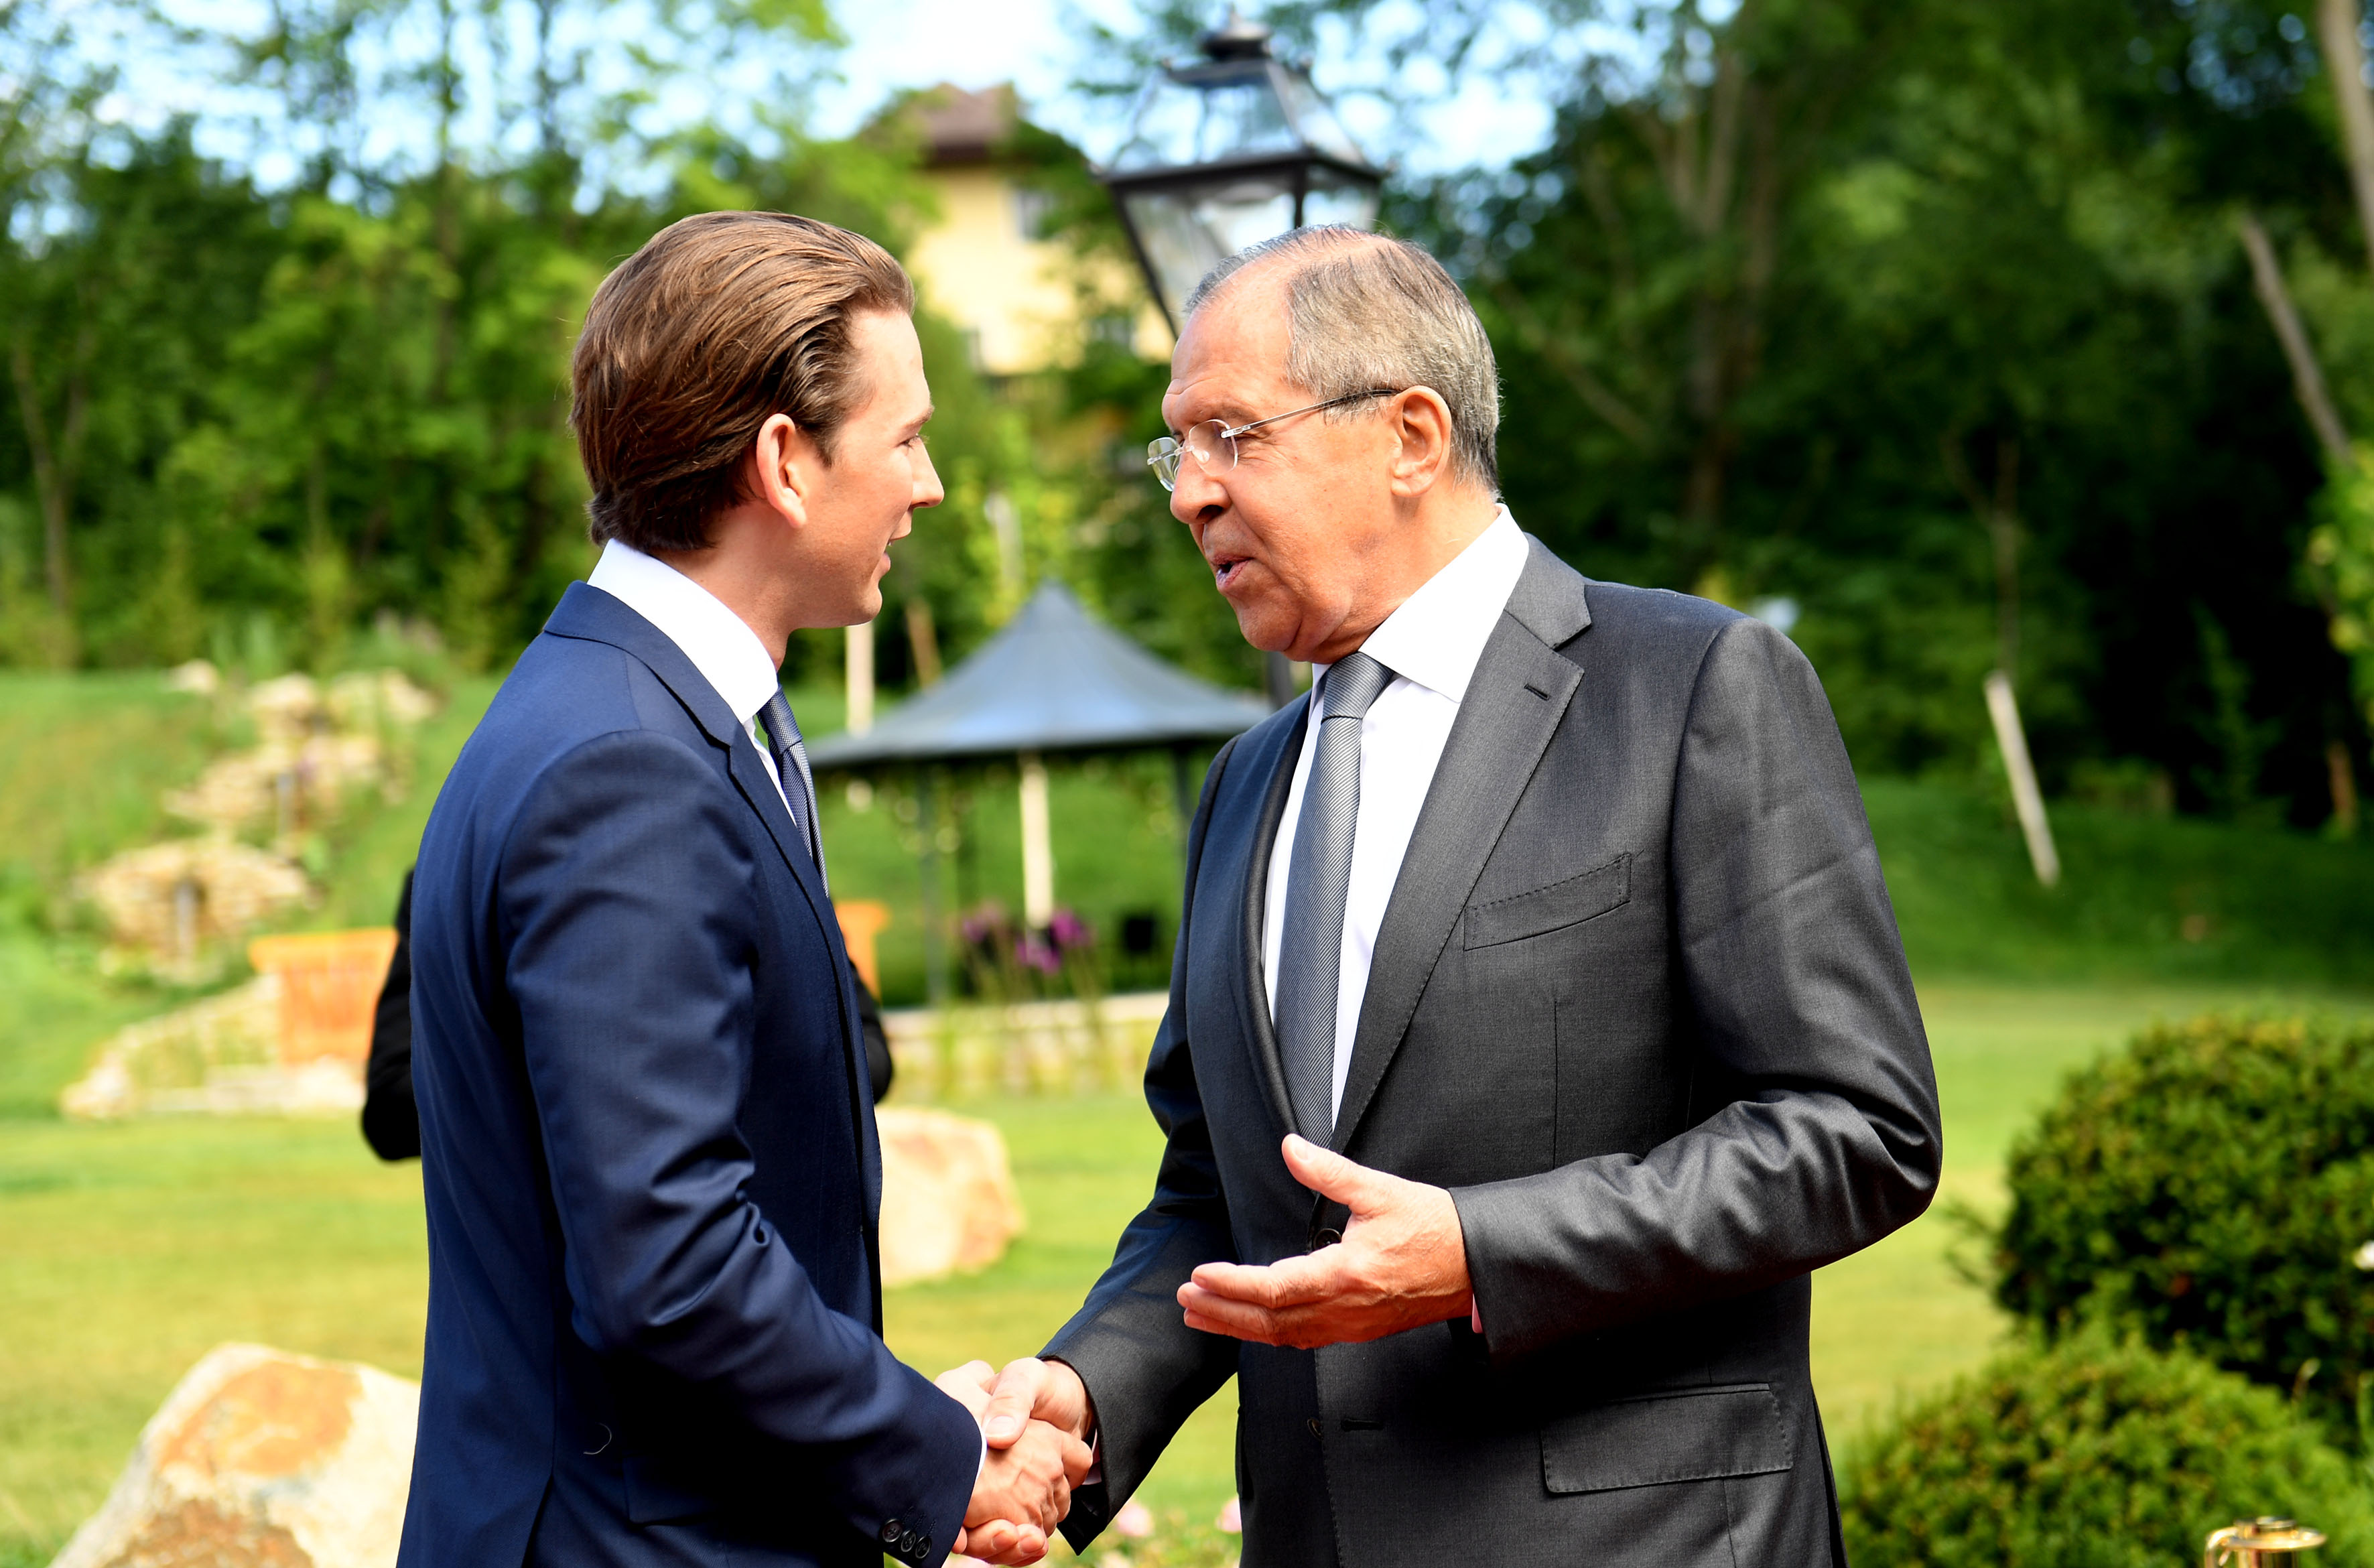 Kurz with Russian Foreign Minister Lavrov, 11 July 2017